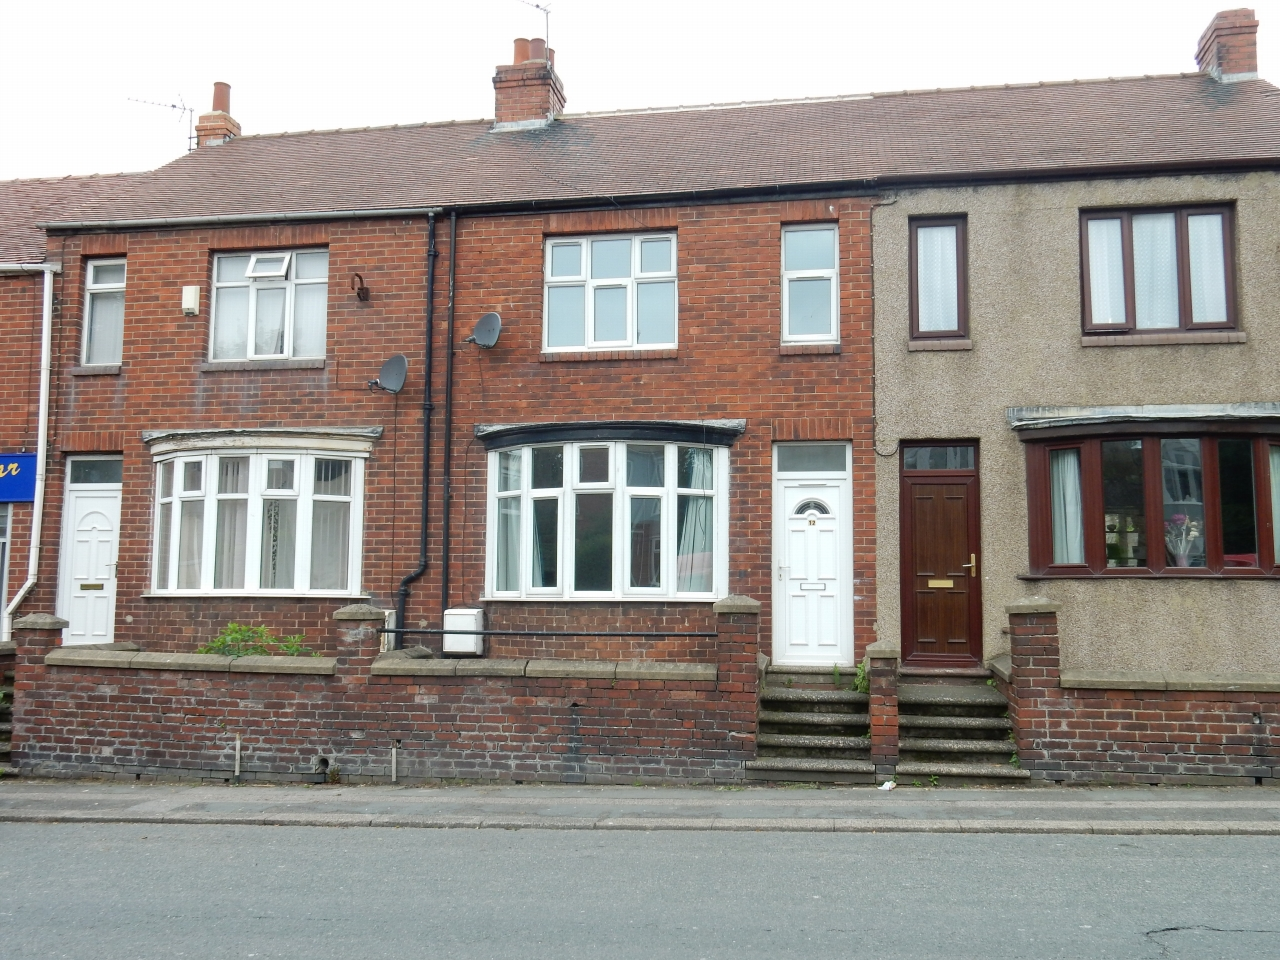 3 bedroom mid terraced house Let in Stockton On Tees - Photograph 1.